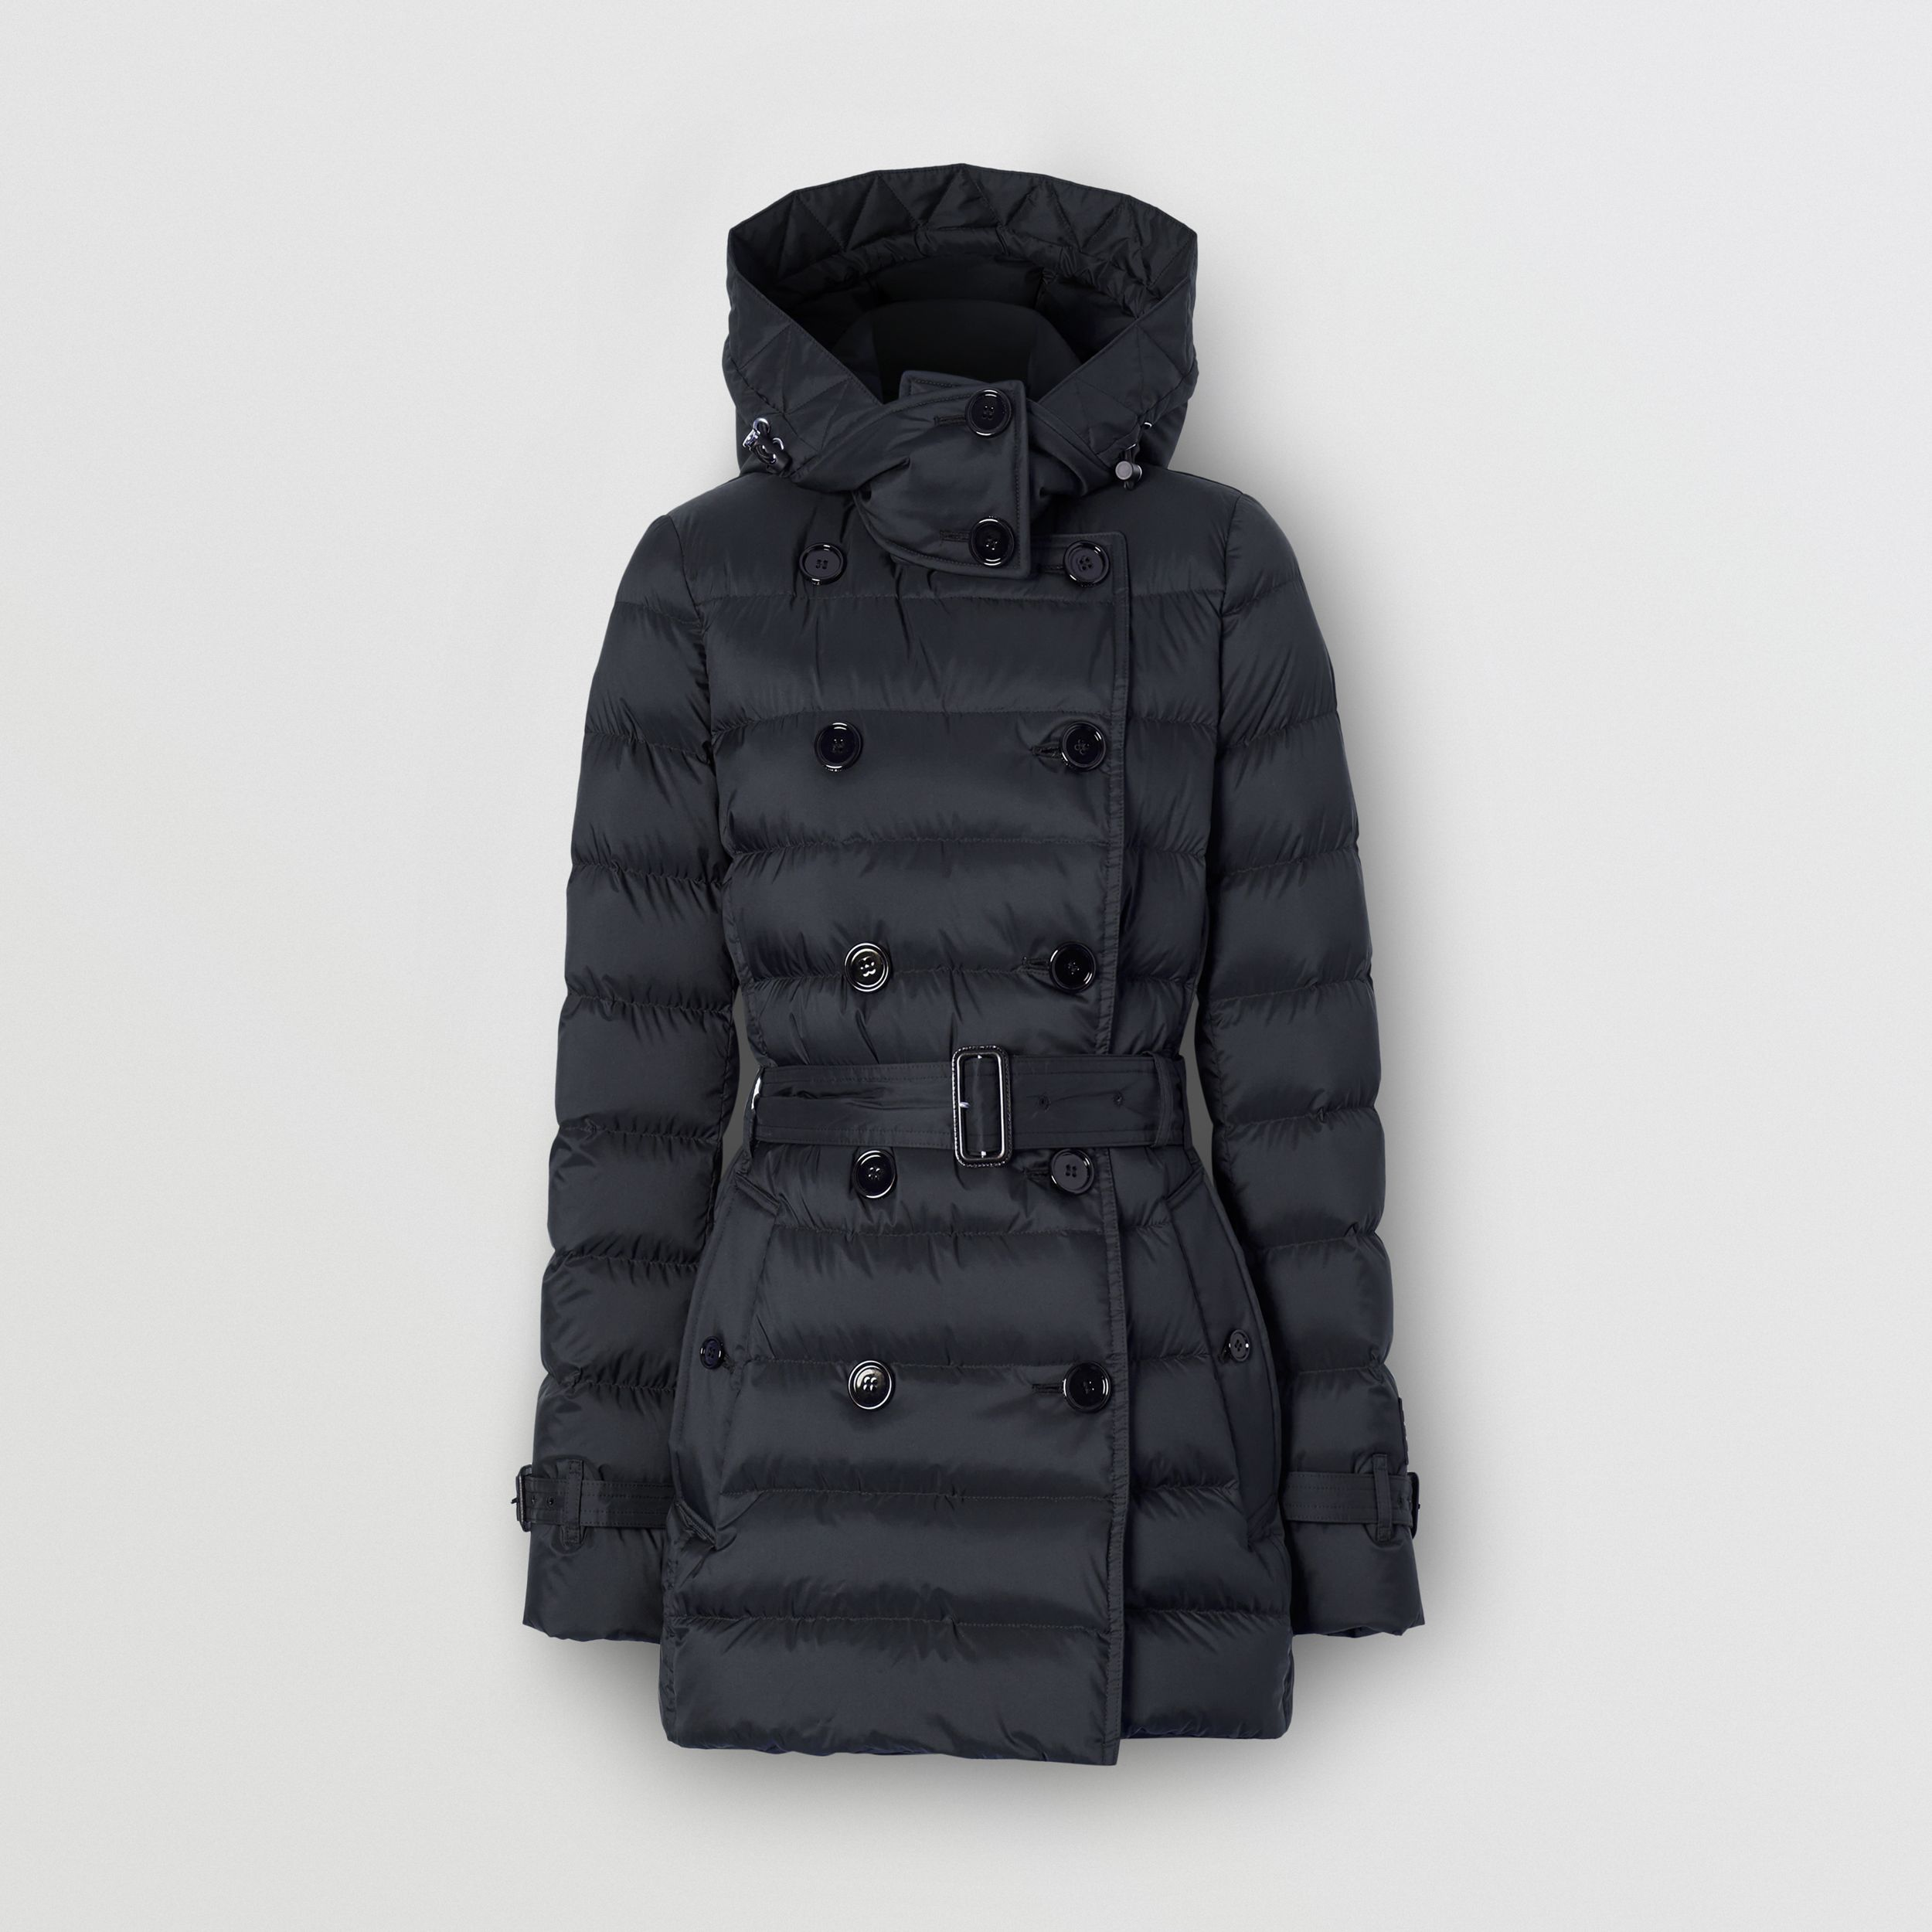 Logo Appliqué Detachable Hood Puffer Coat in Midnight Blue - Women | Burberry - 4